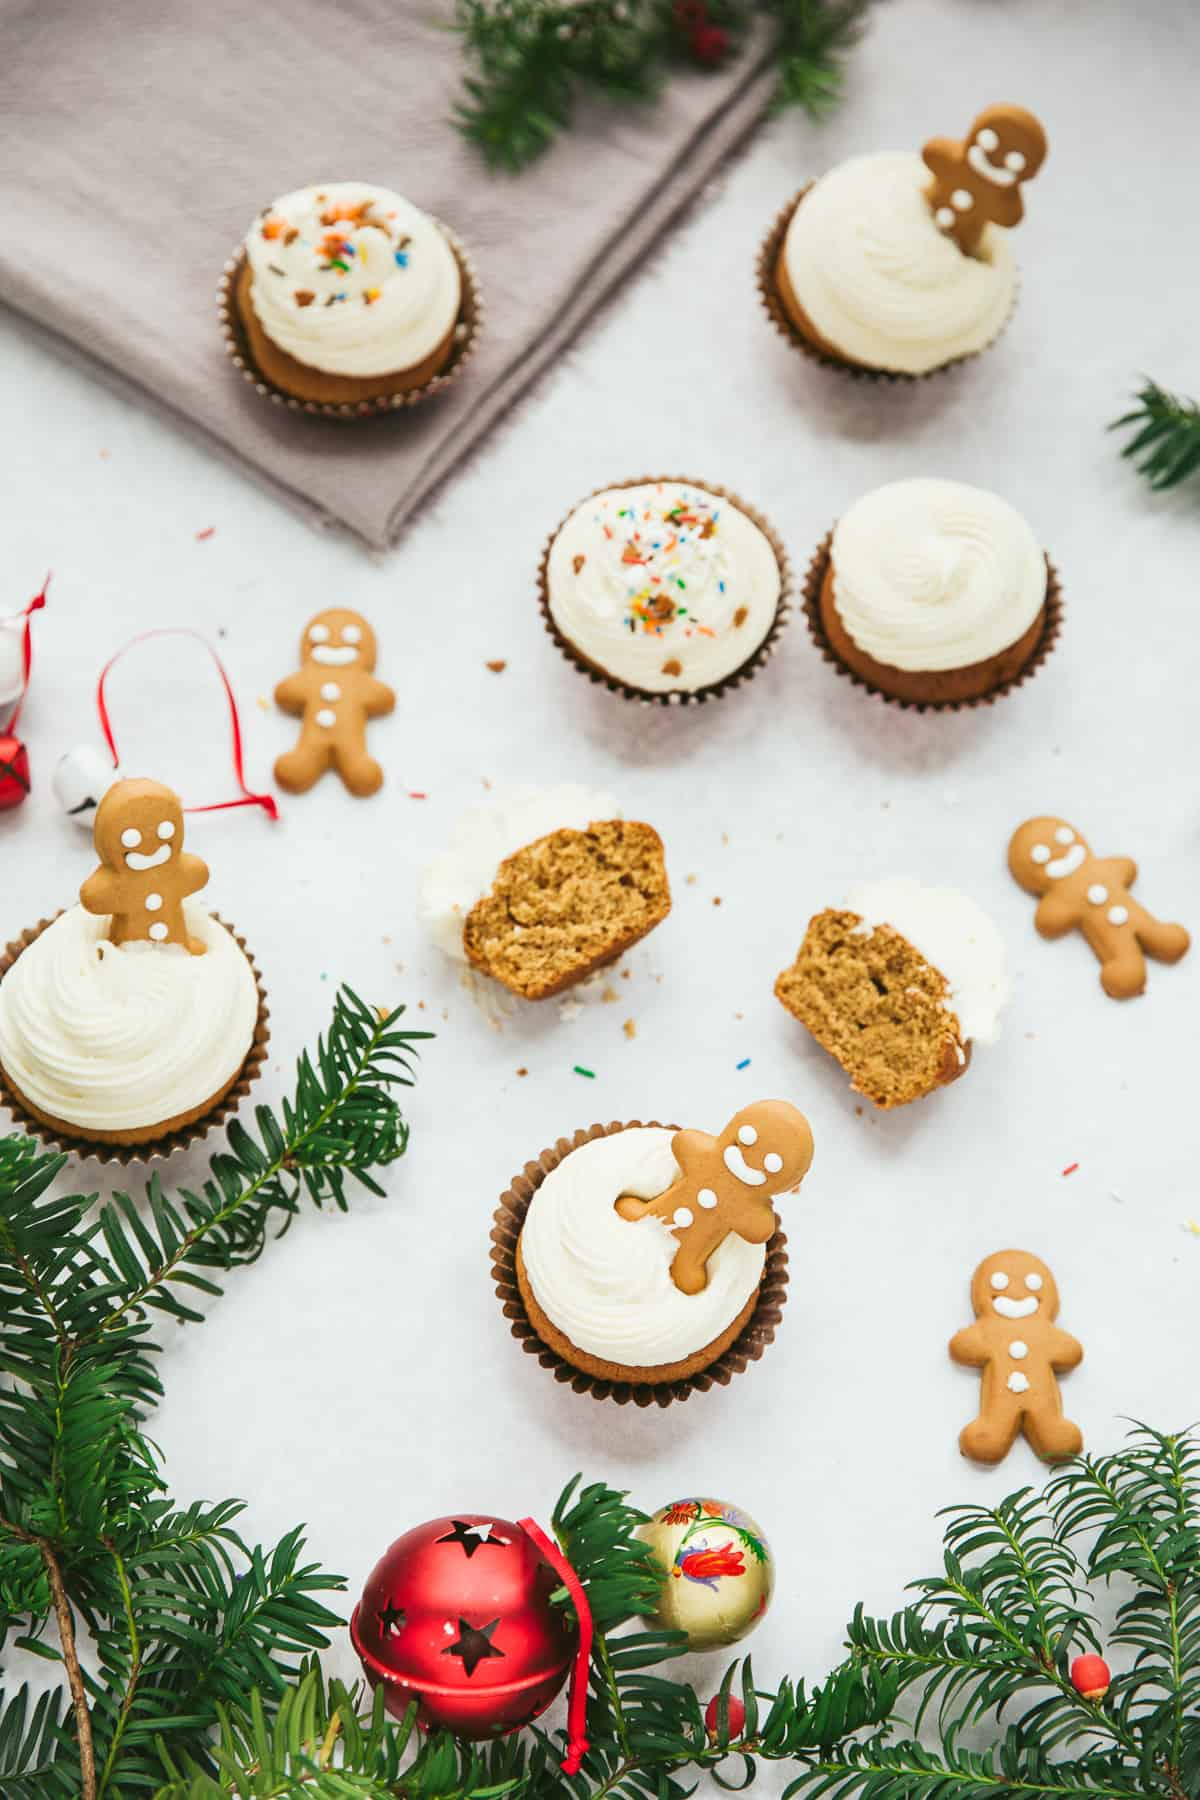 Overhead shot of cupcakes covered in a white coloured frosting surrounded by gingerbread men.